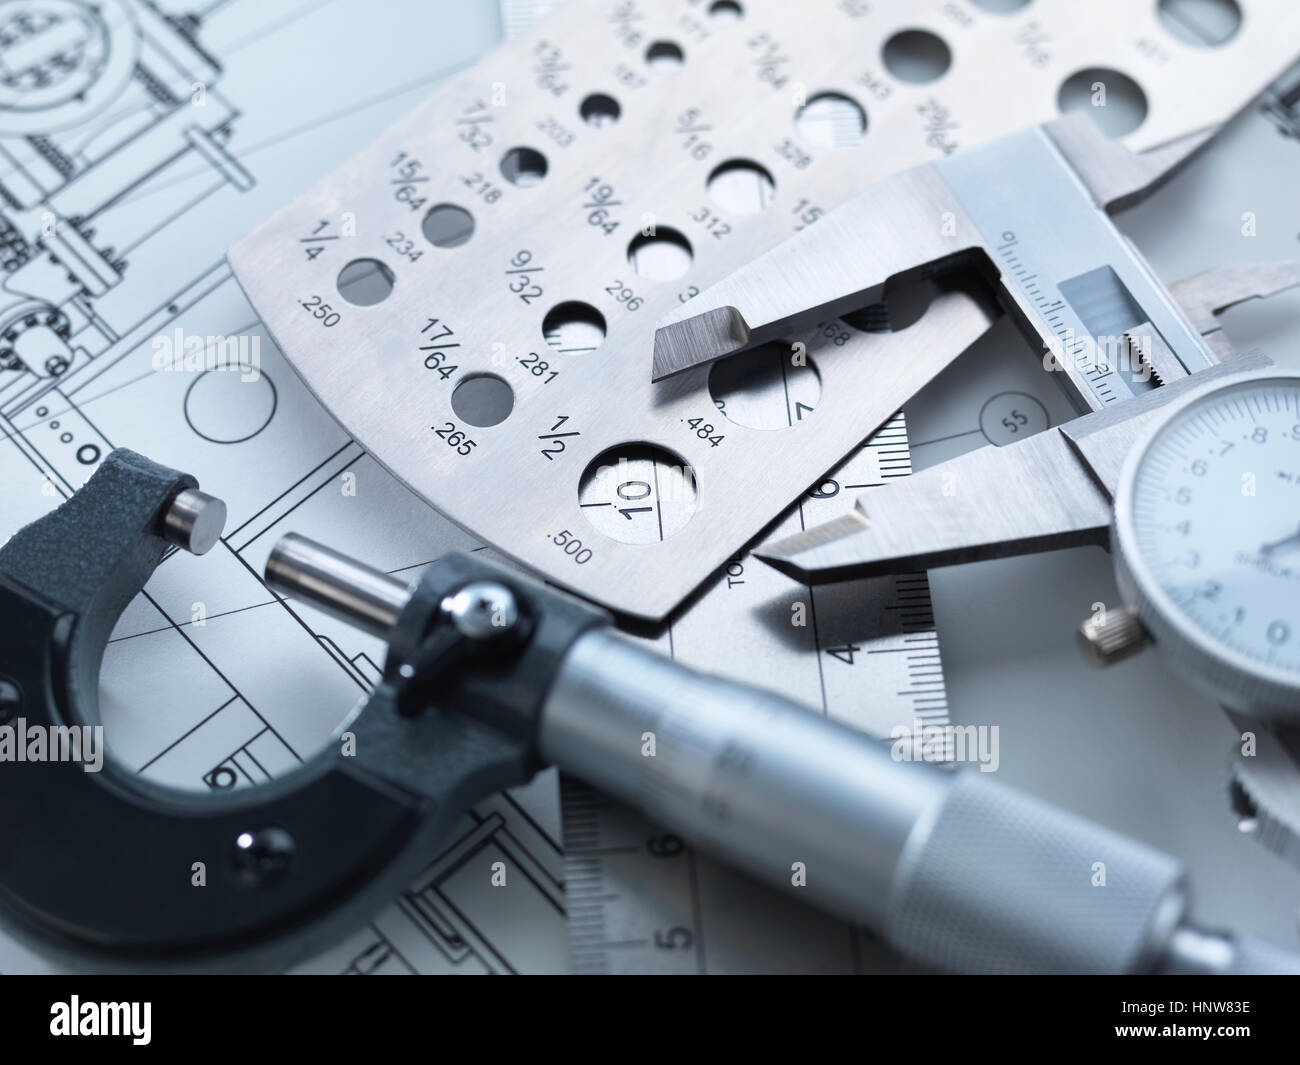 Engineering Measurement, Dial calipers sitting on a steel rule with micrometer and engineering drawings - Stock Image